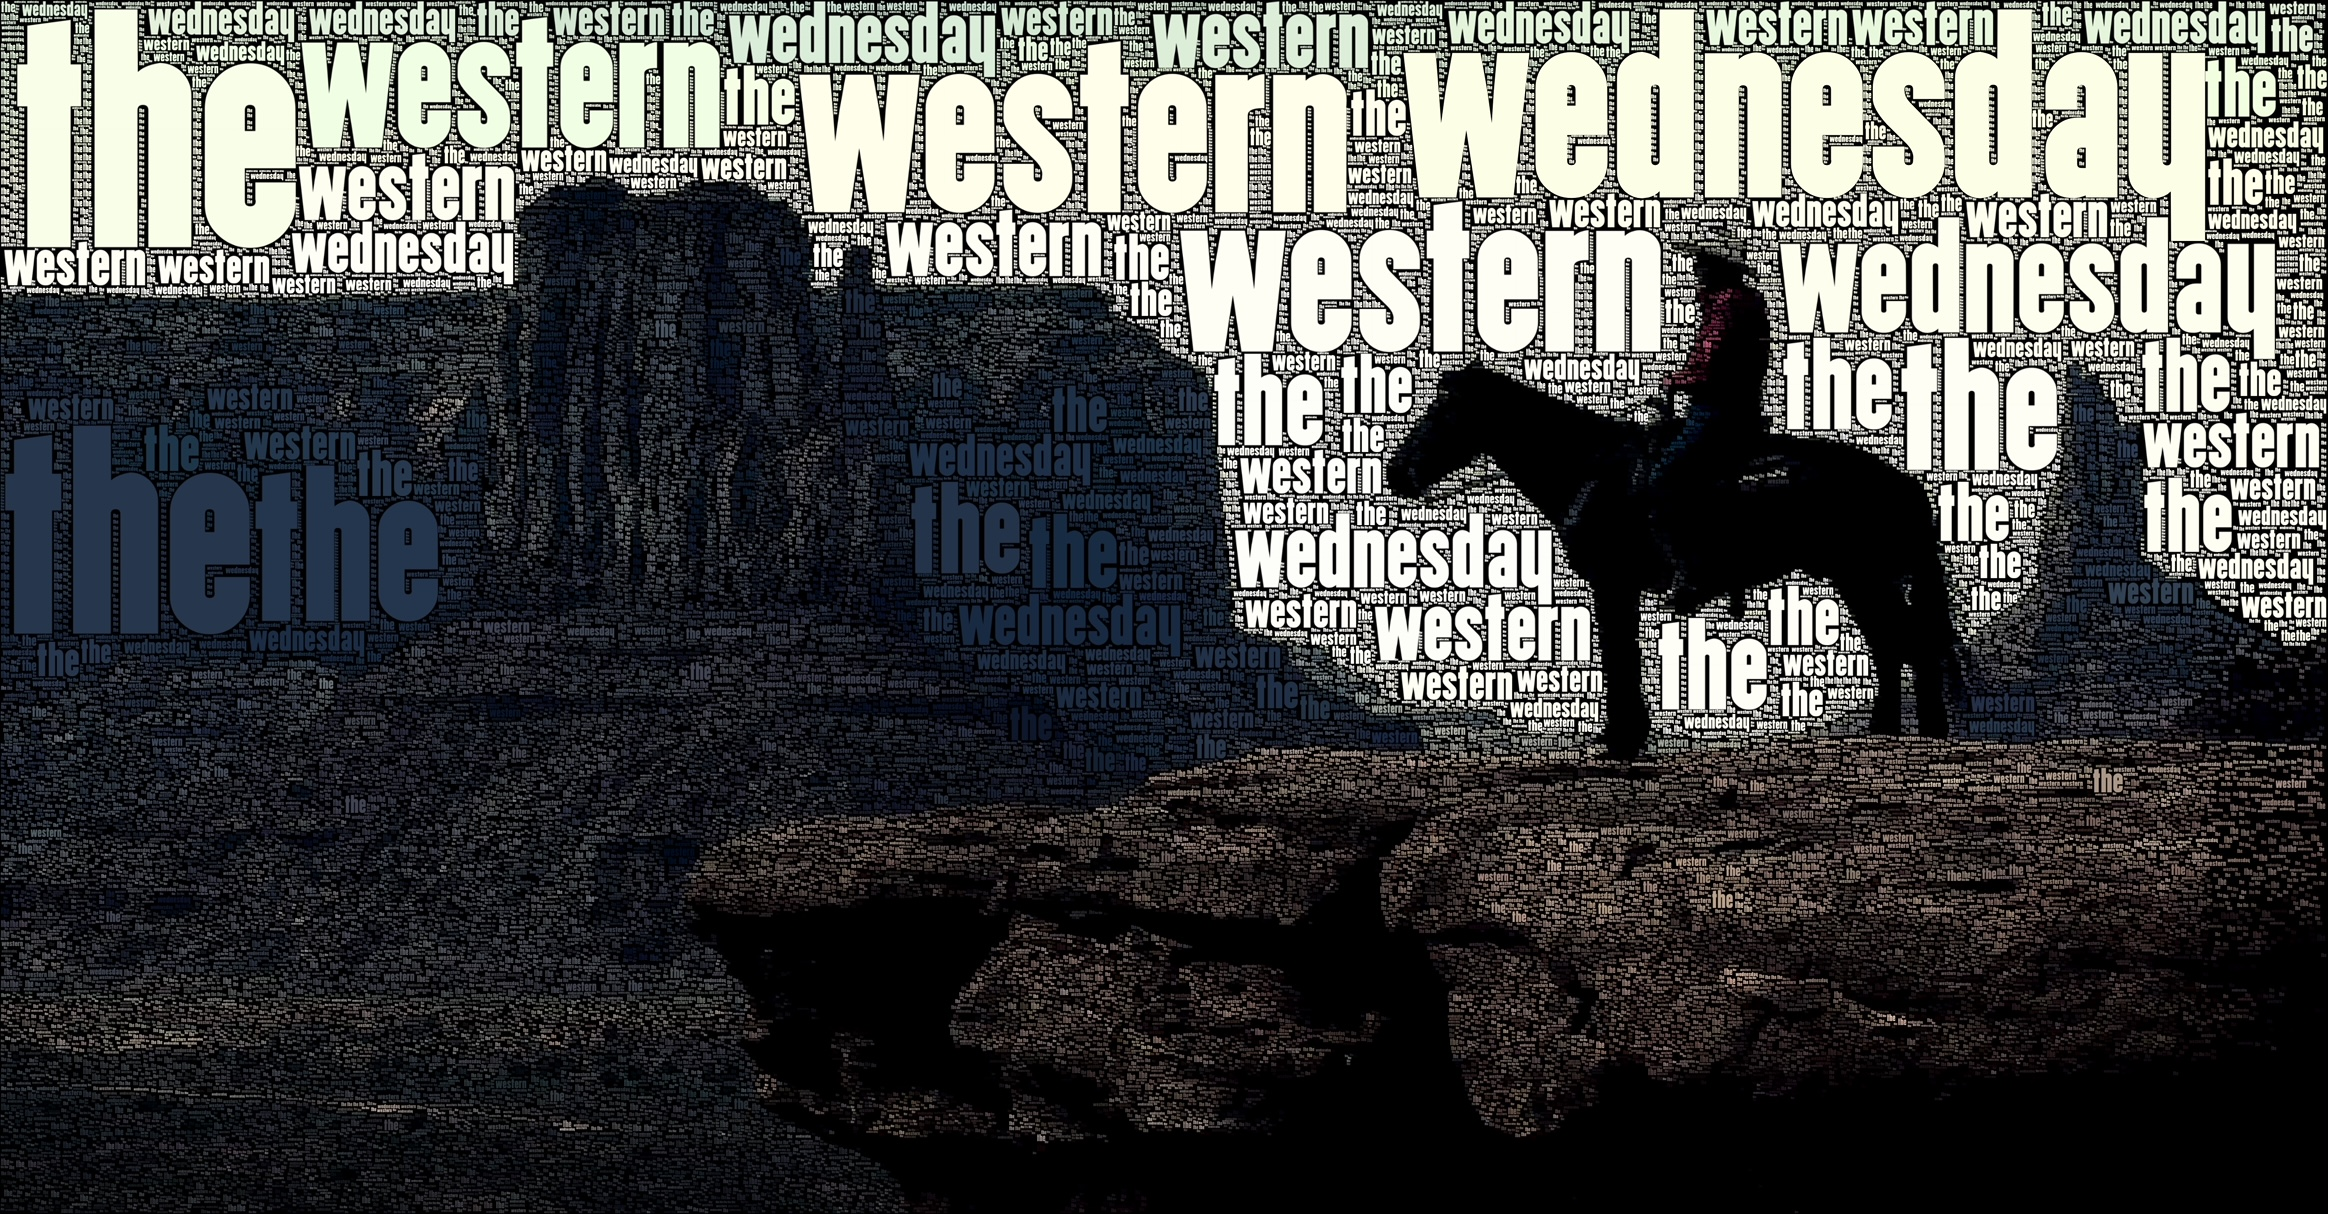 The Wednesday Western ~ 17th Feb 2021